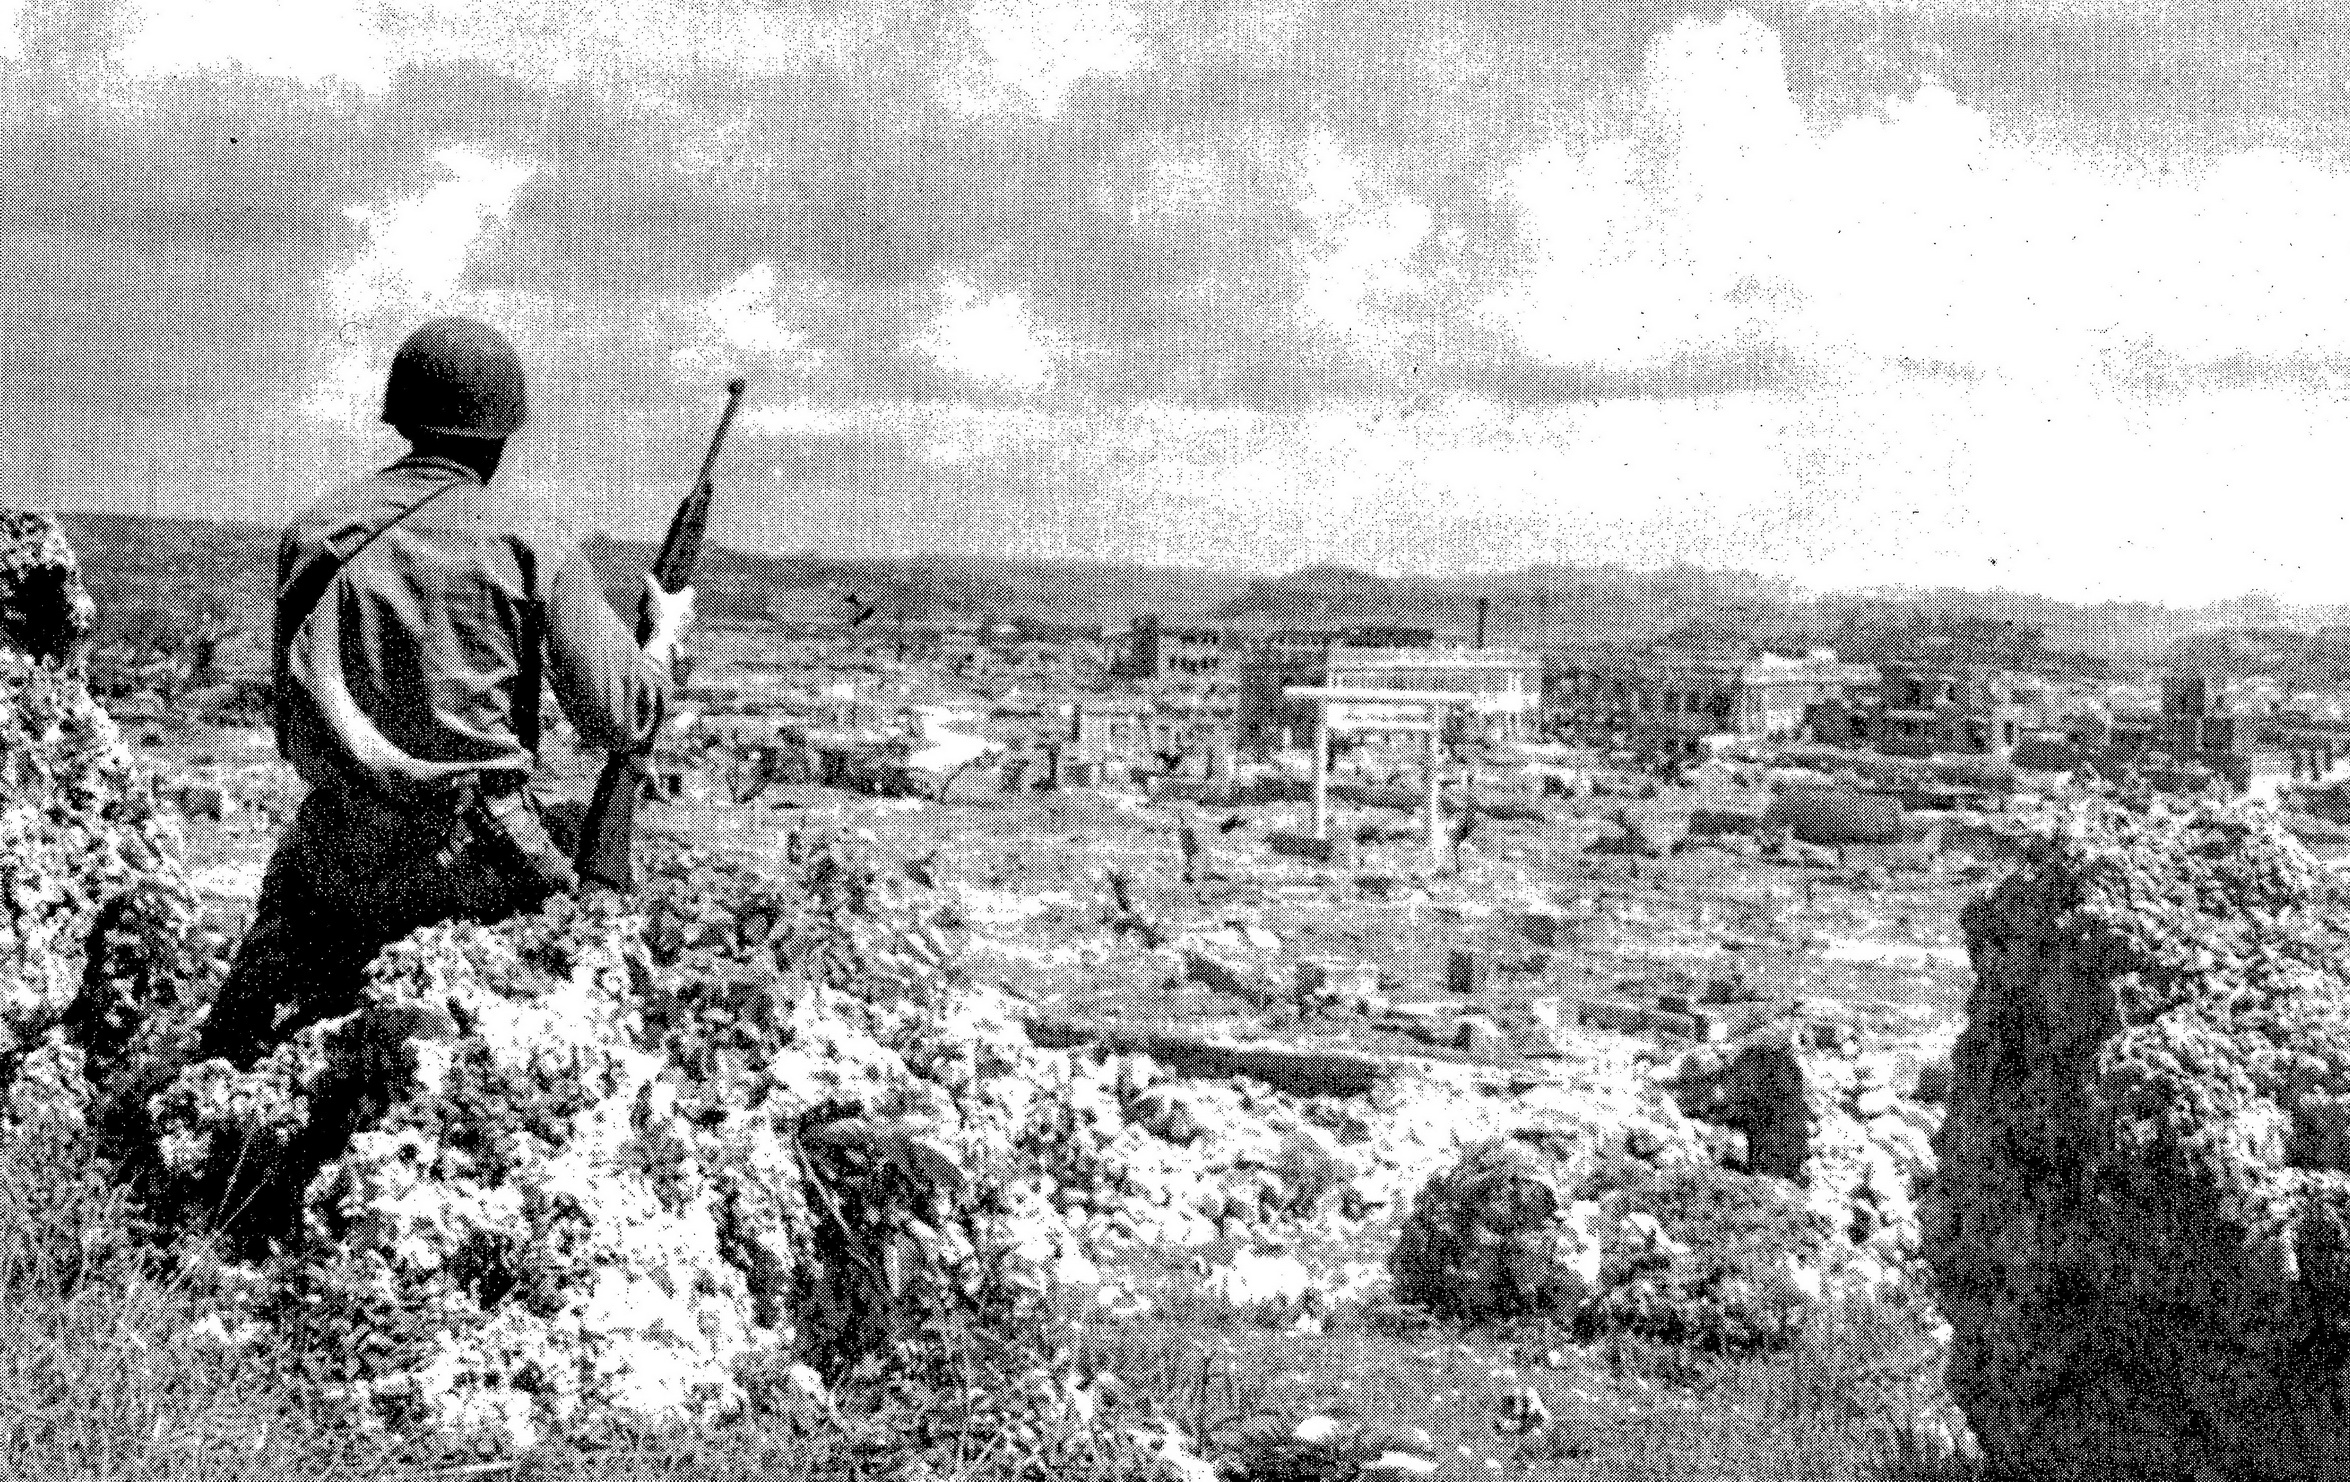 Okinawa: The Final Battle Revisited